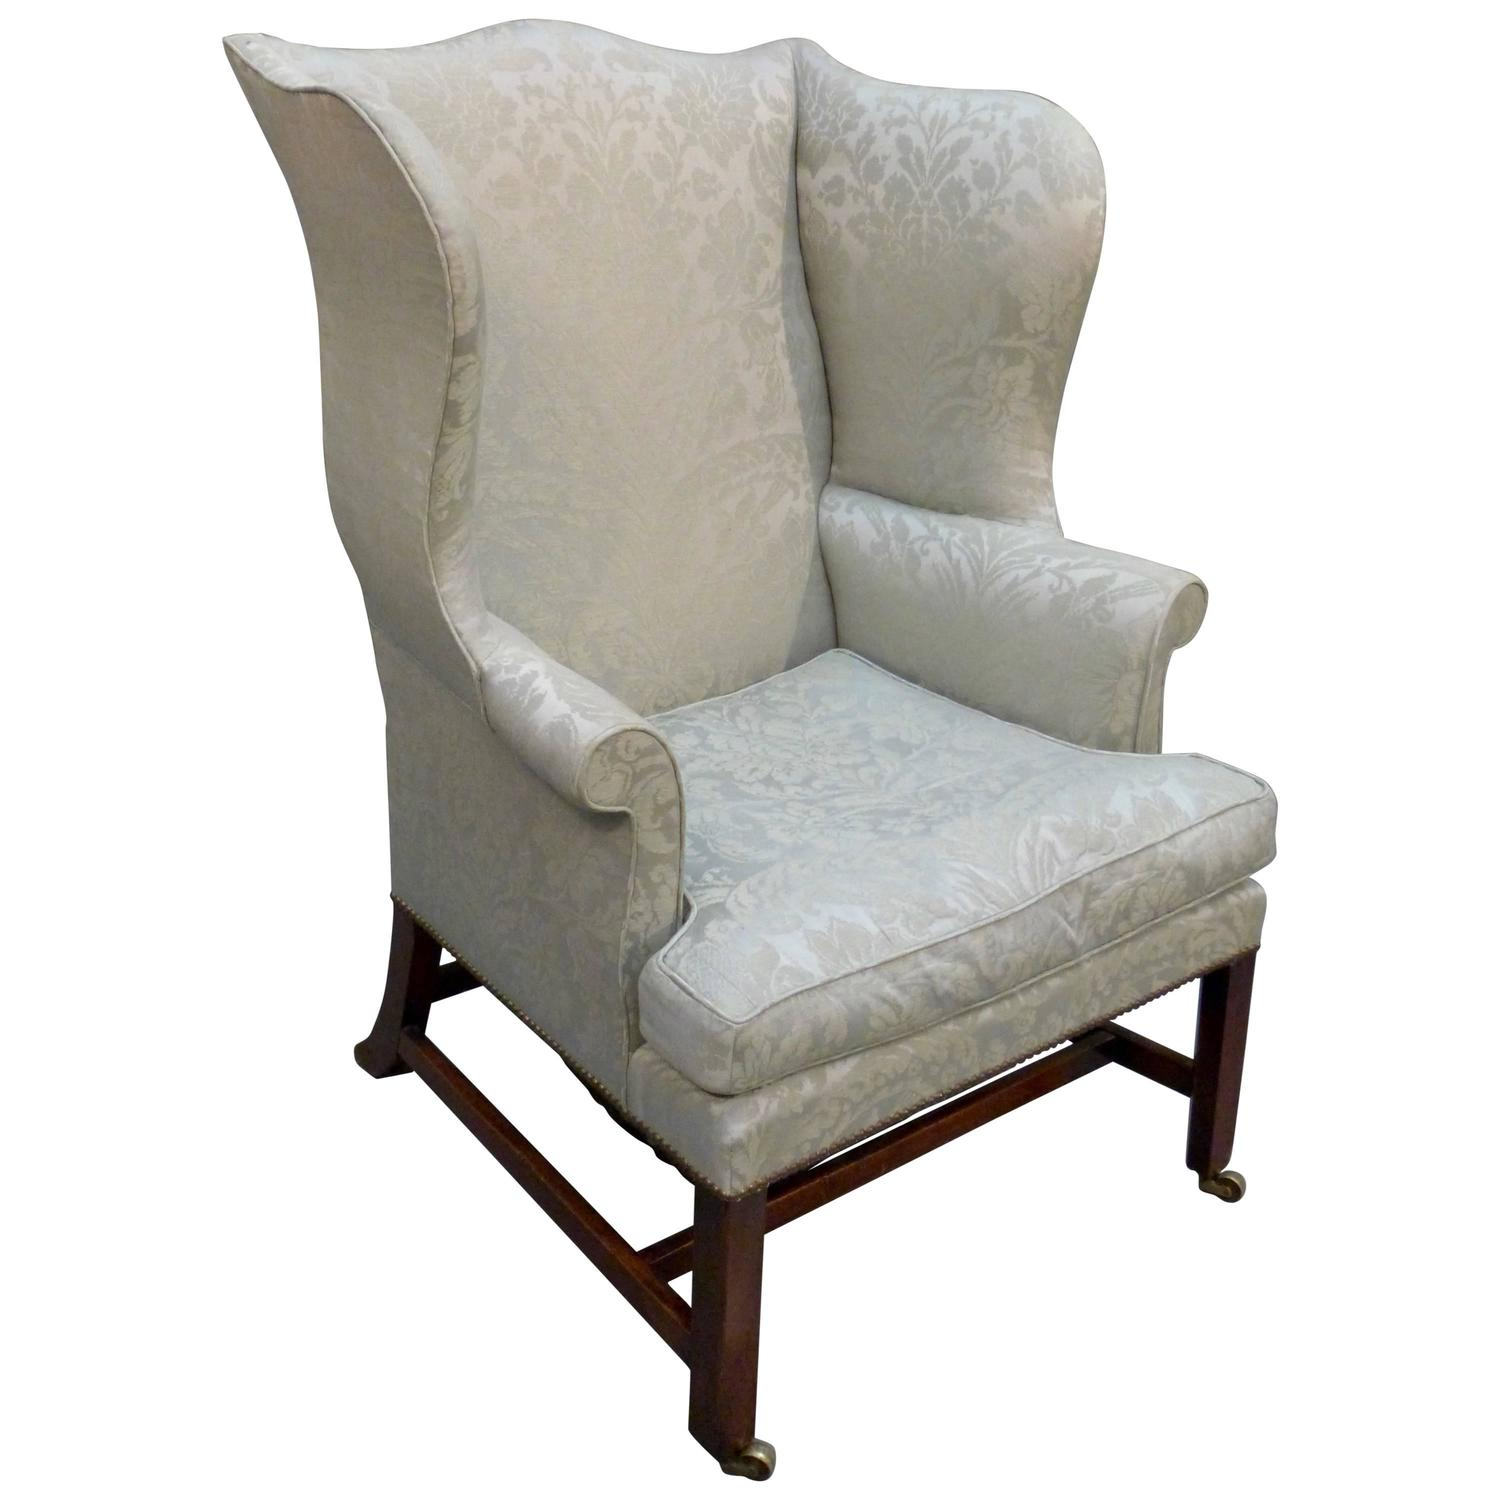 Georgian Wing Chair For Sale at 1stdibs